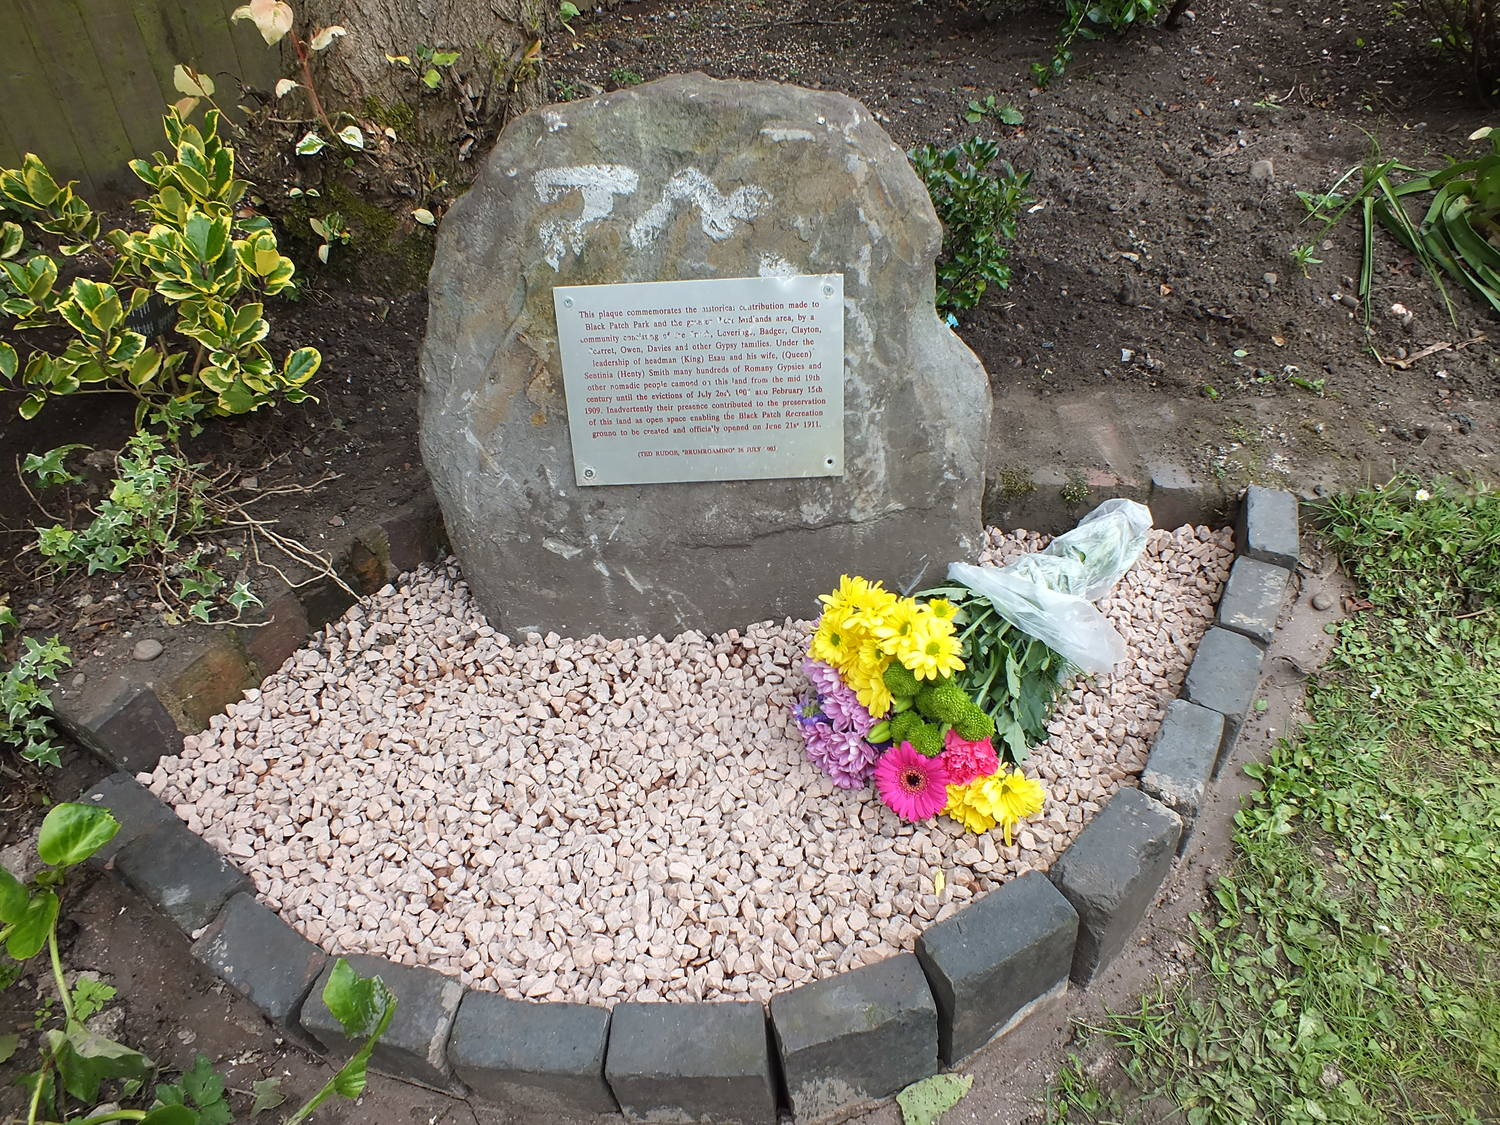 FIRST MEMORIAL AFTER COMPLETING THE MOVE FROM BLACK PATCH PARK INTO THE GROUNDS OF SOHO FOUNDRY TAVERN, FOUNDRY LANE, SMETHWICK 12/07/2013